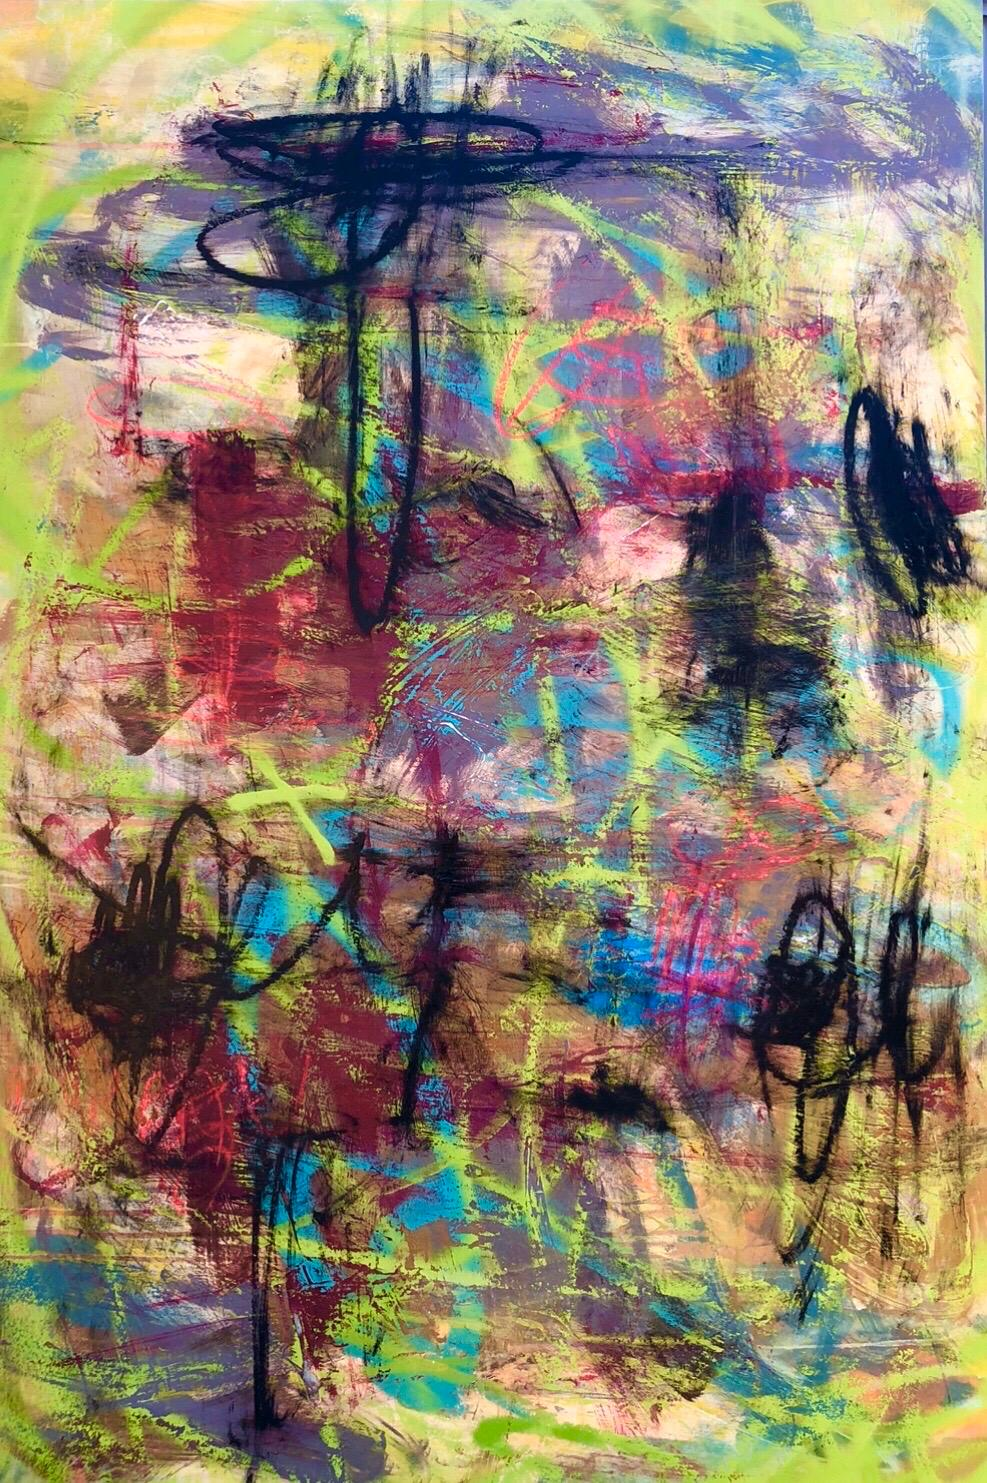 Abstract Expressionist Painting on Panel